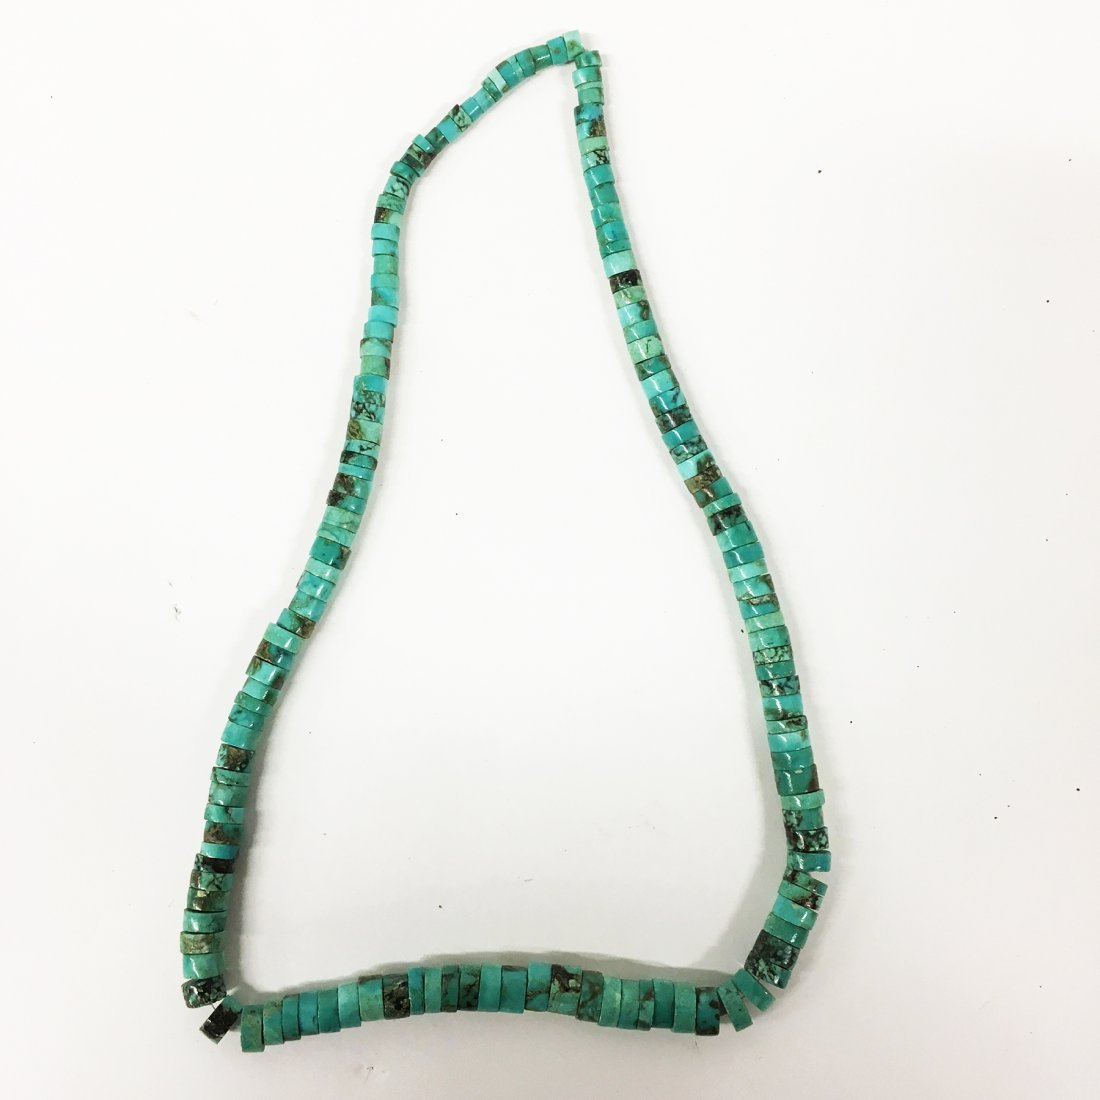 Turquoise and Sterling necklaces with gemstone accents - 7